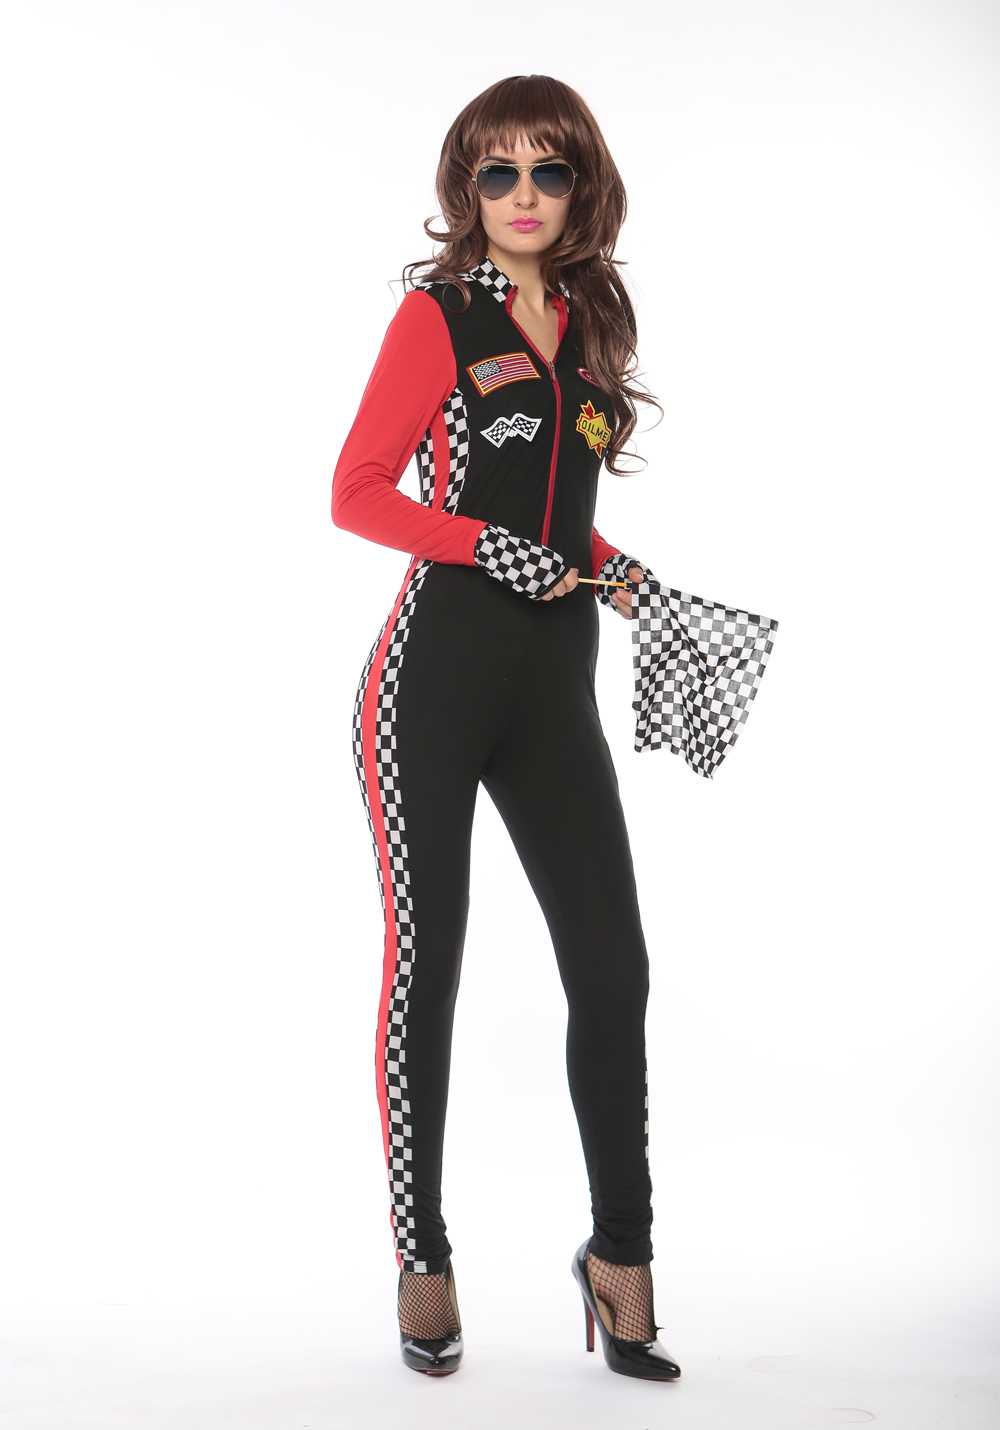 F1722 sexy red race girl jumpsuit,accessory:gloves